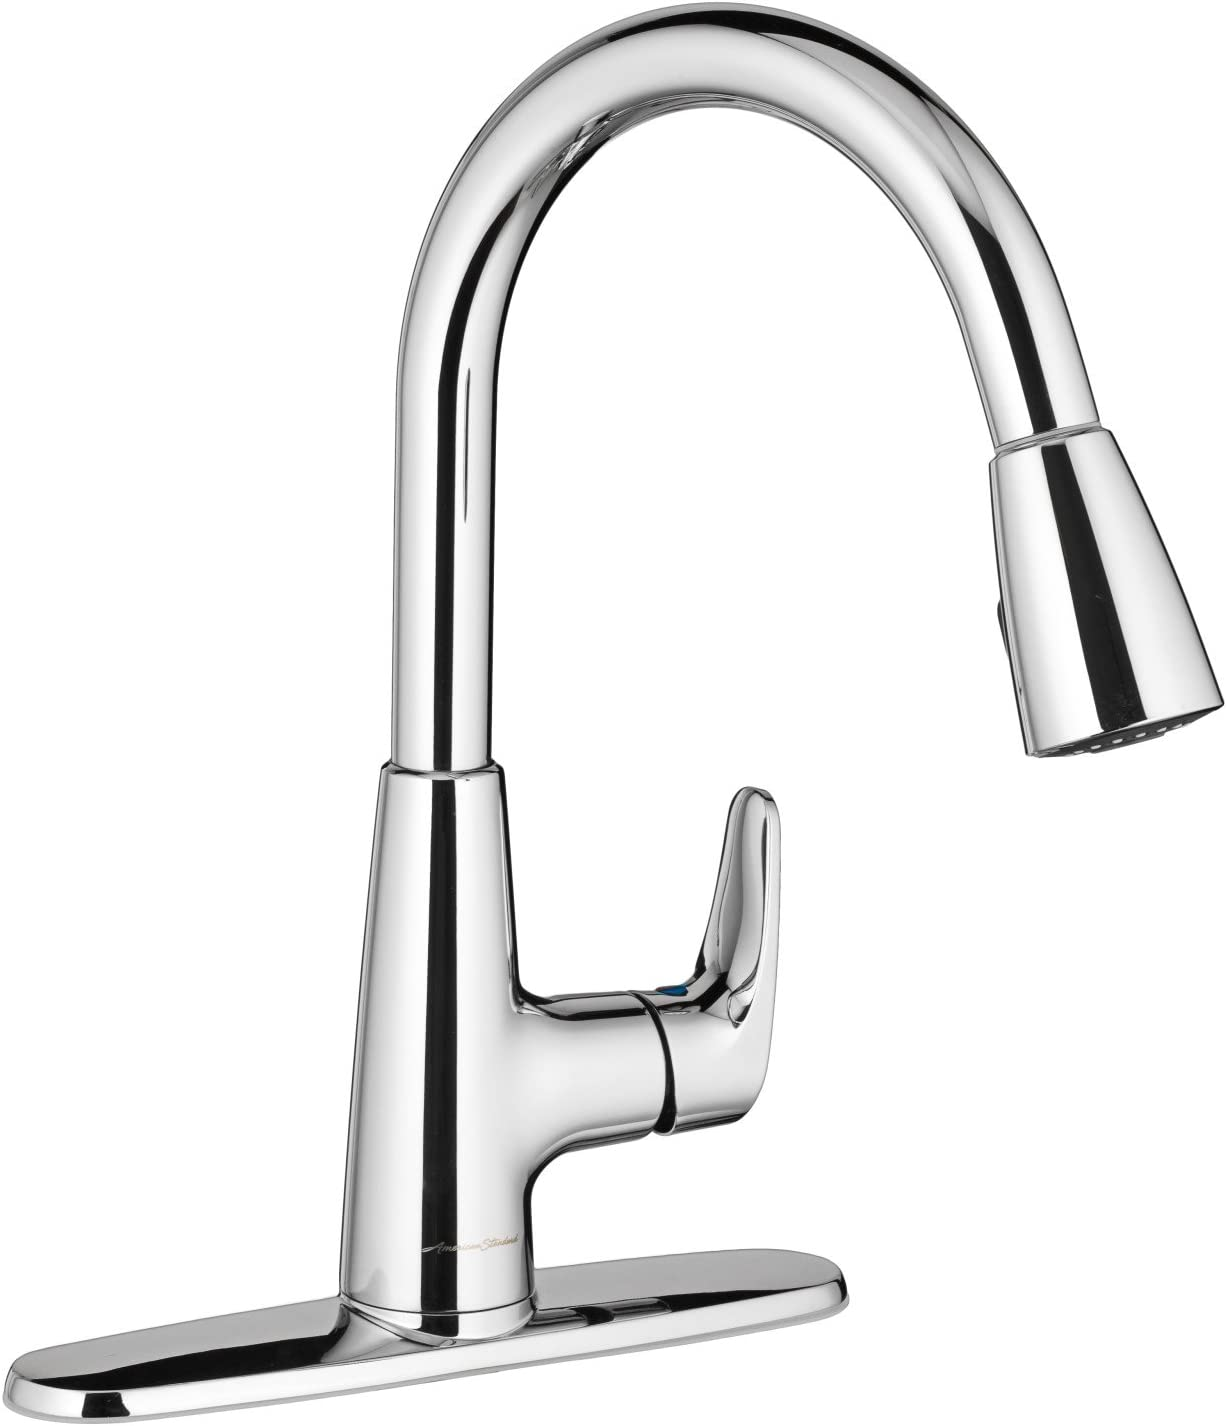 Top 10 Best Kitchen Faucets under $100, $150 to $200 Reviews in 2021 6